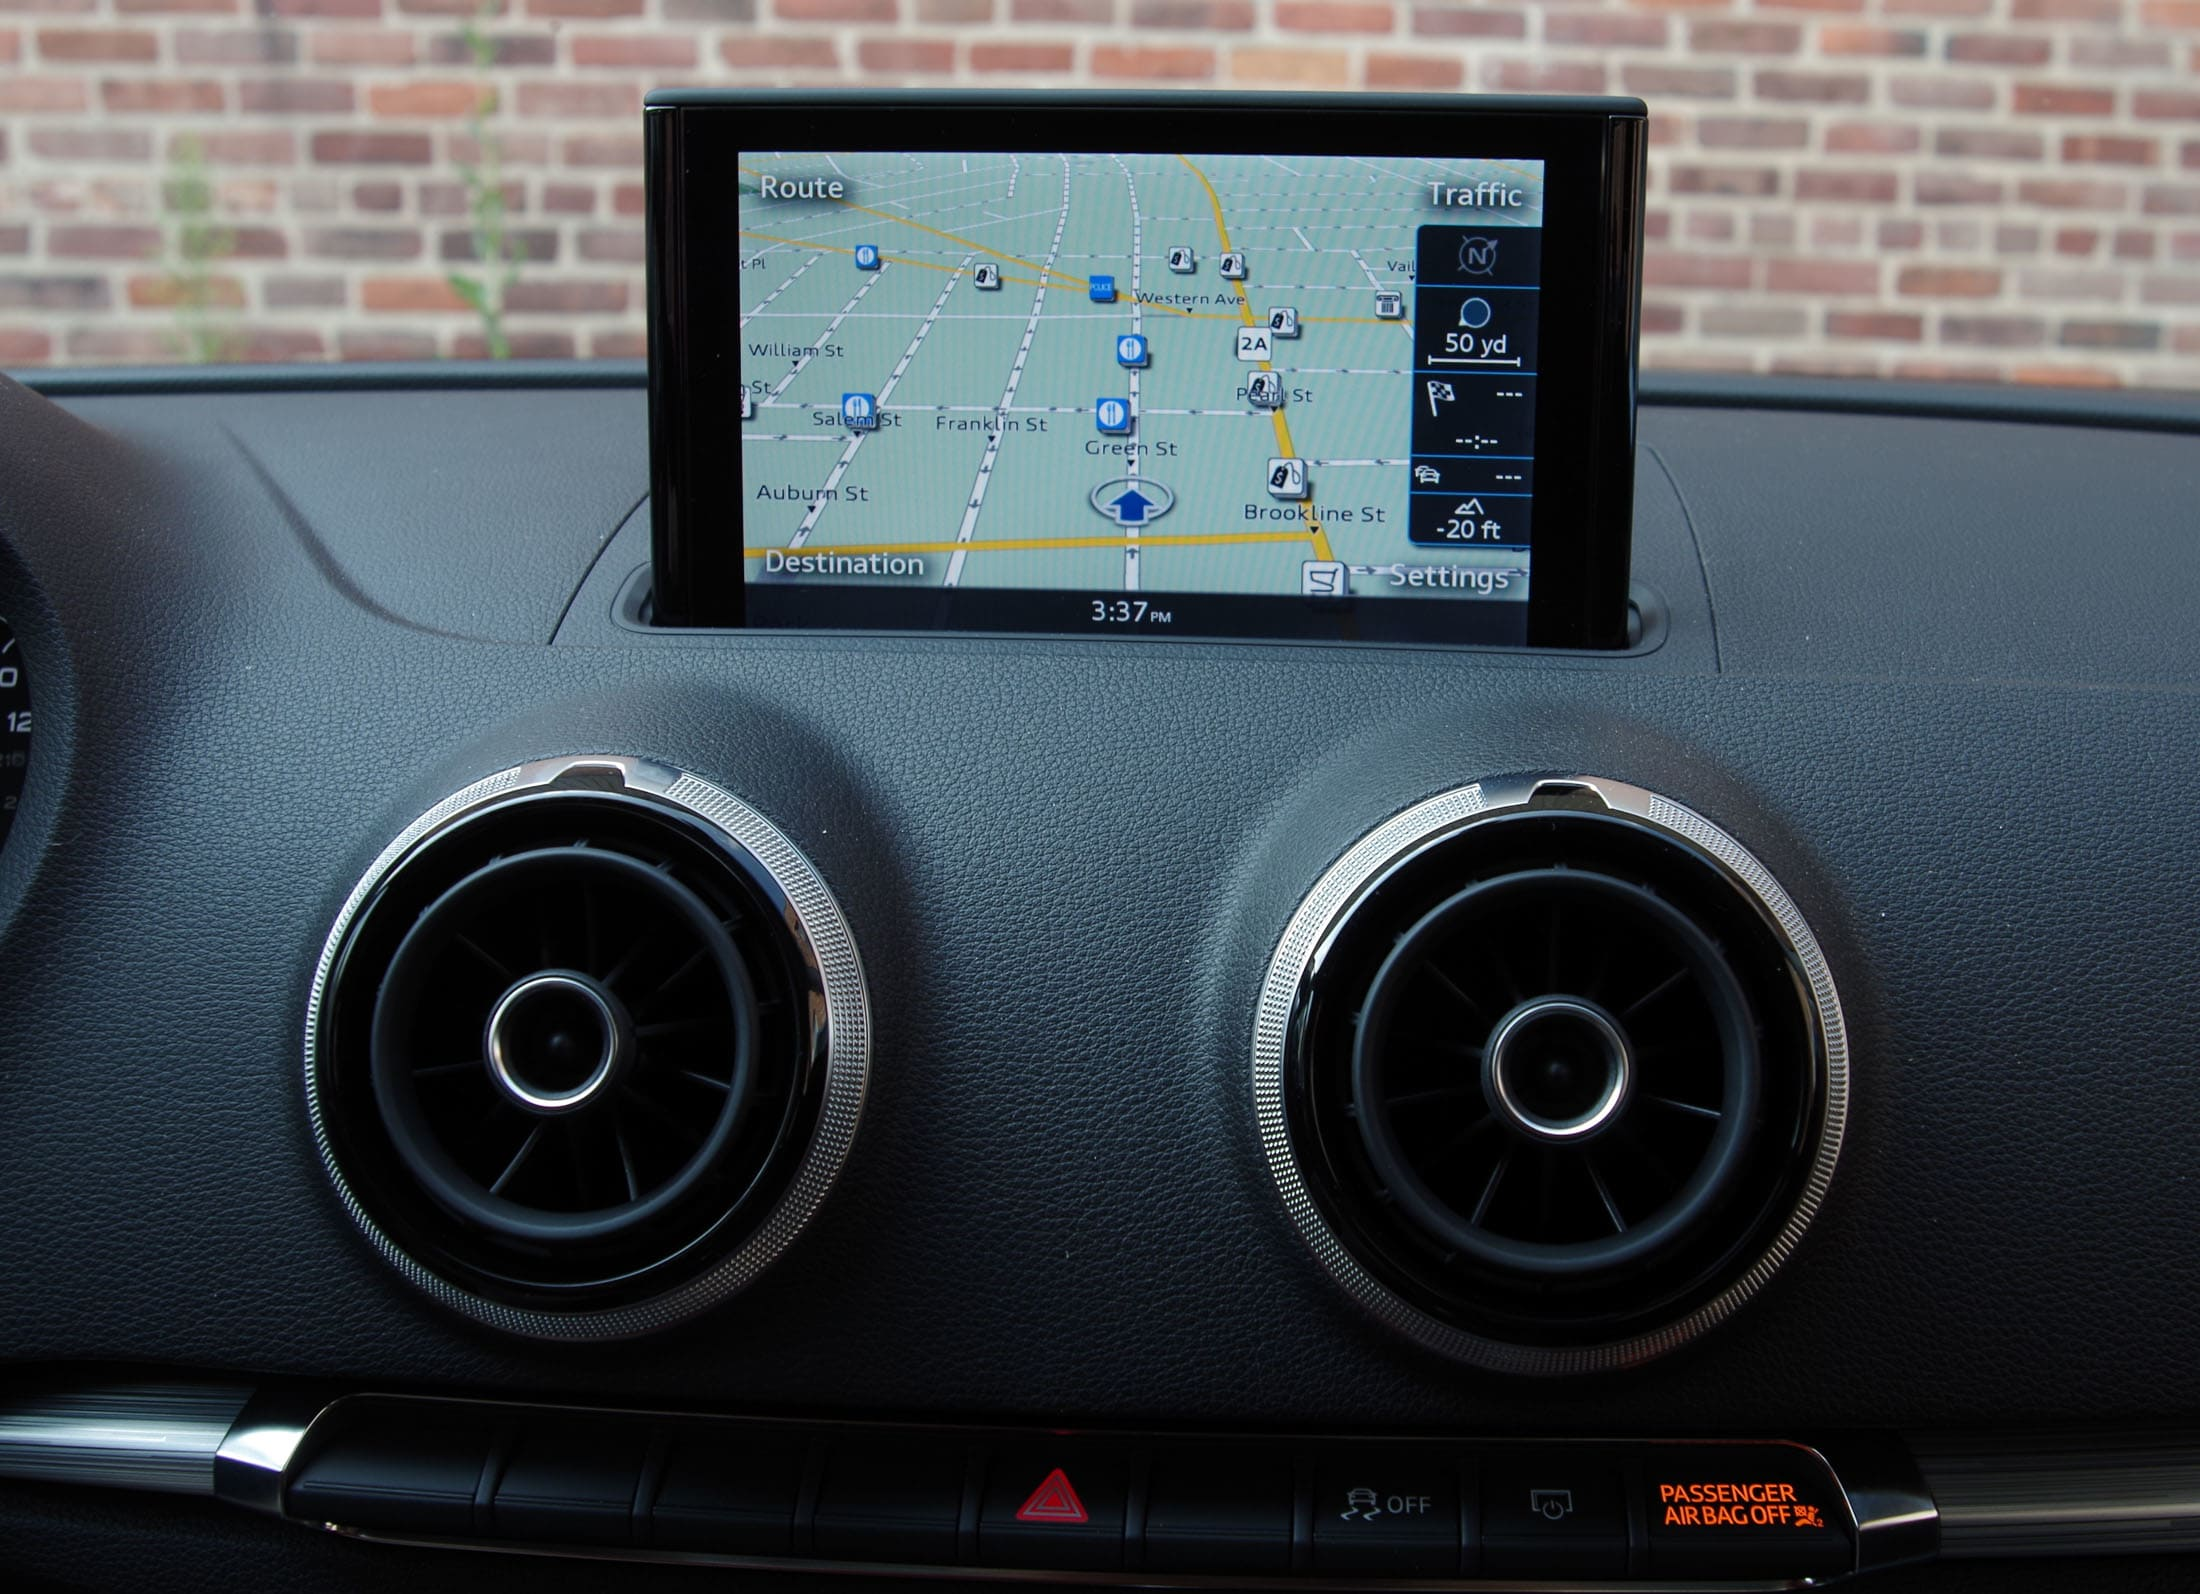 2015 audi a3 navigation screen